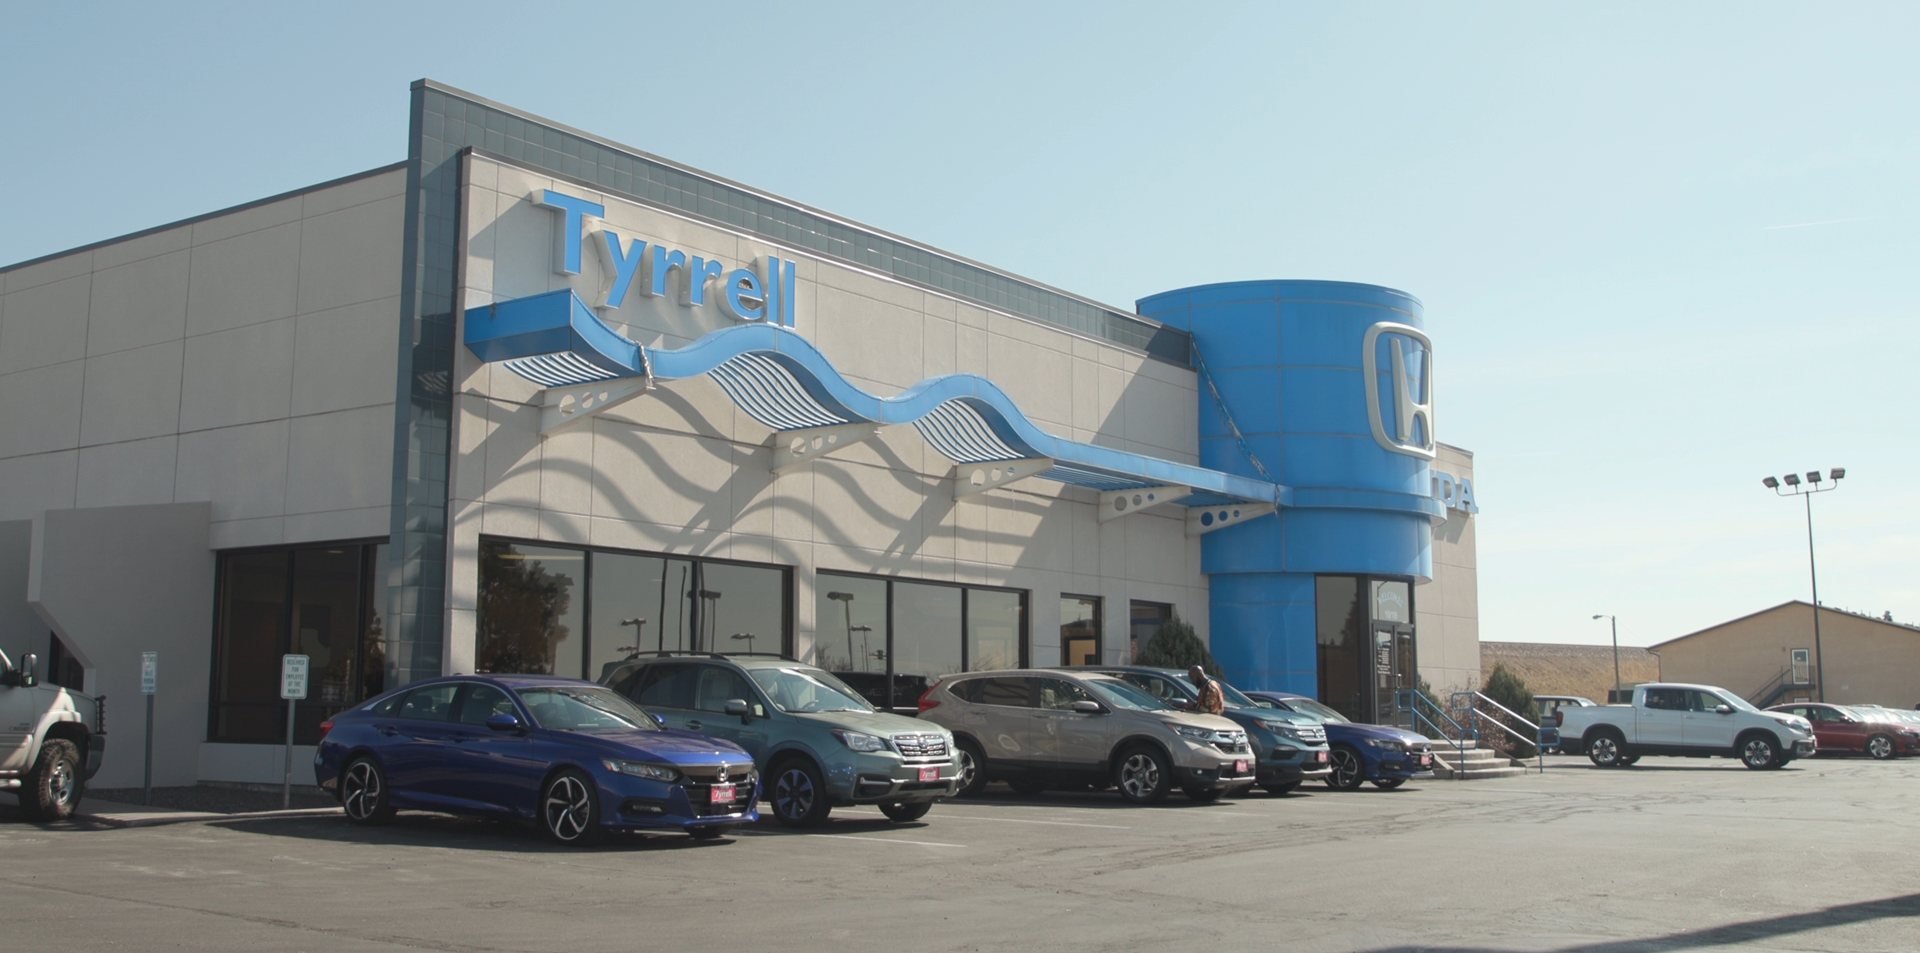 Tyrrell dealership